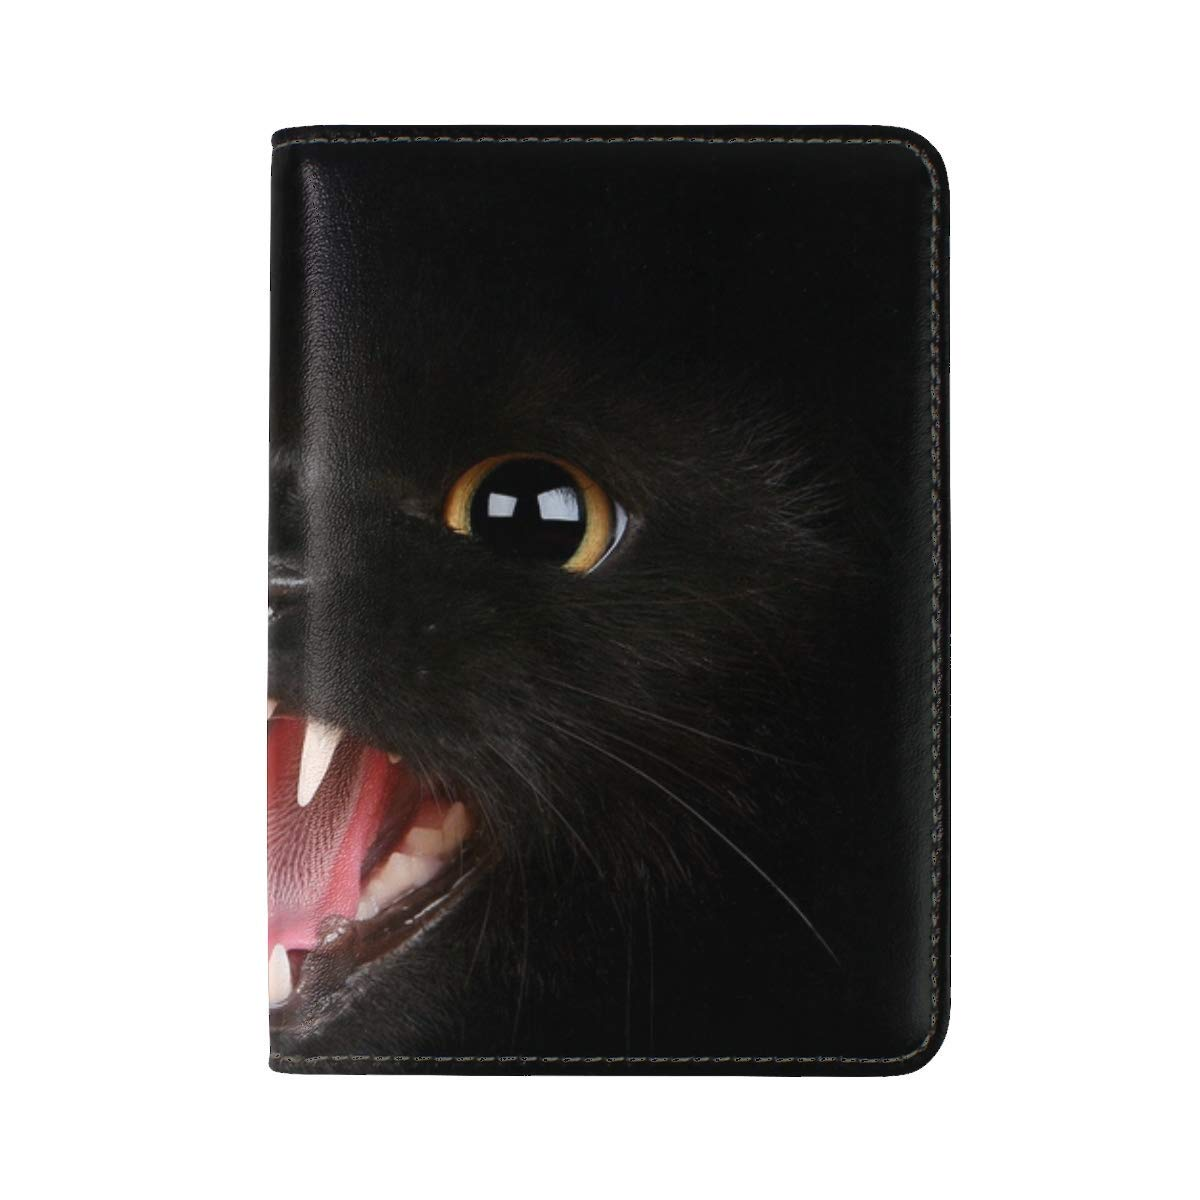 Kitten Black Eyes Aggression Teeth Meow Leather Passport Holder Cover Case Travel One Pocket